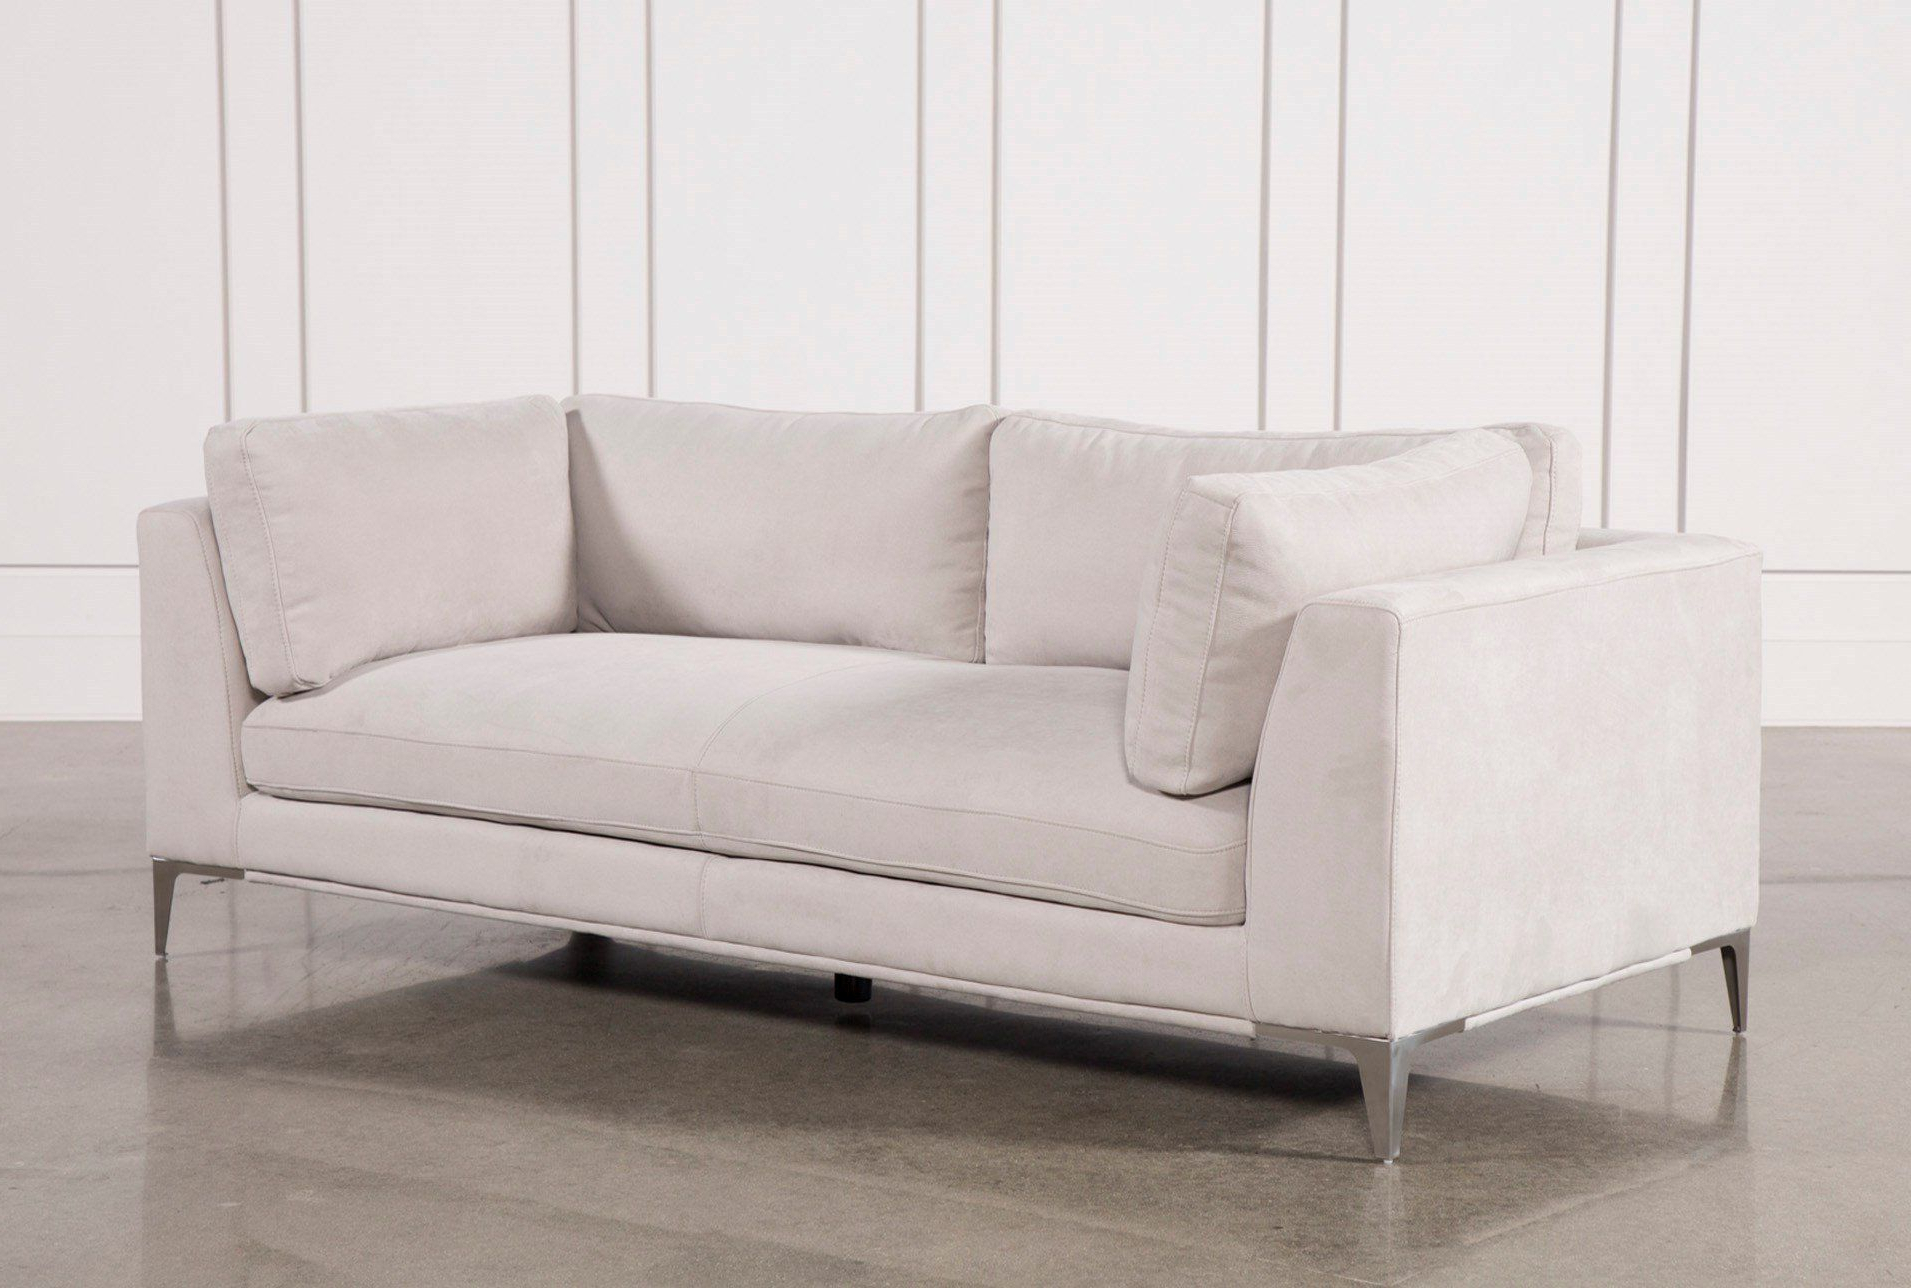 Apollo Light Grey Sofa W/2 Pillows For Trendy Escondido Sofa Chairs (Gallery 3 of 20)